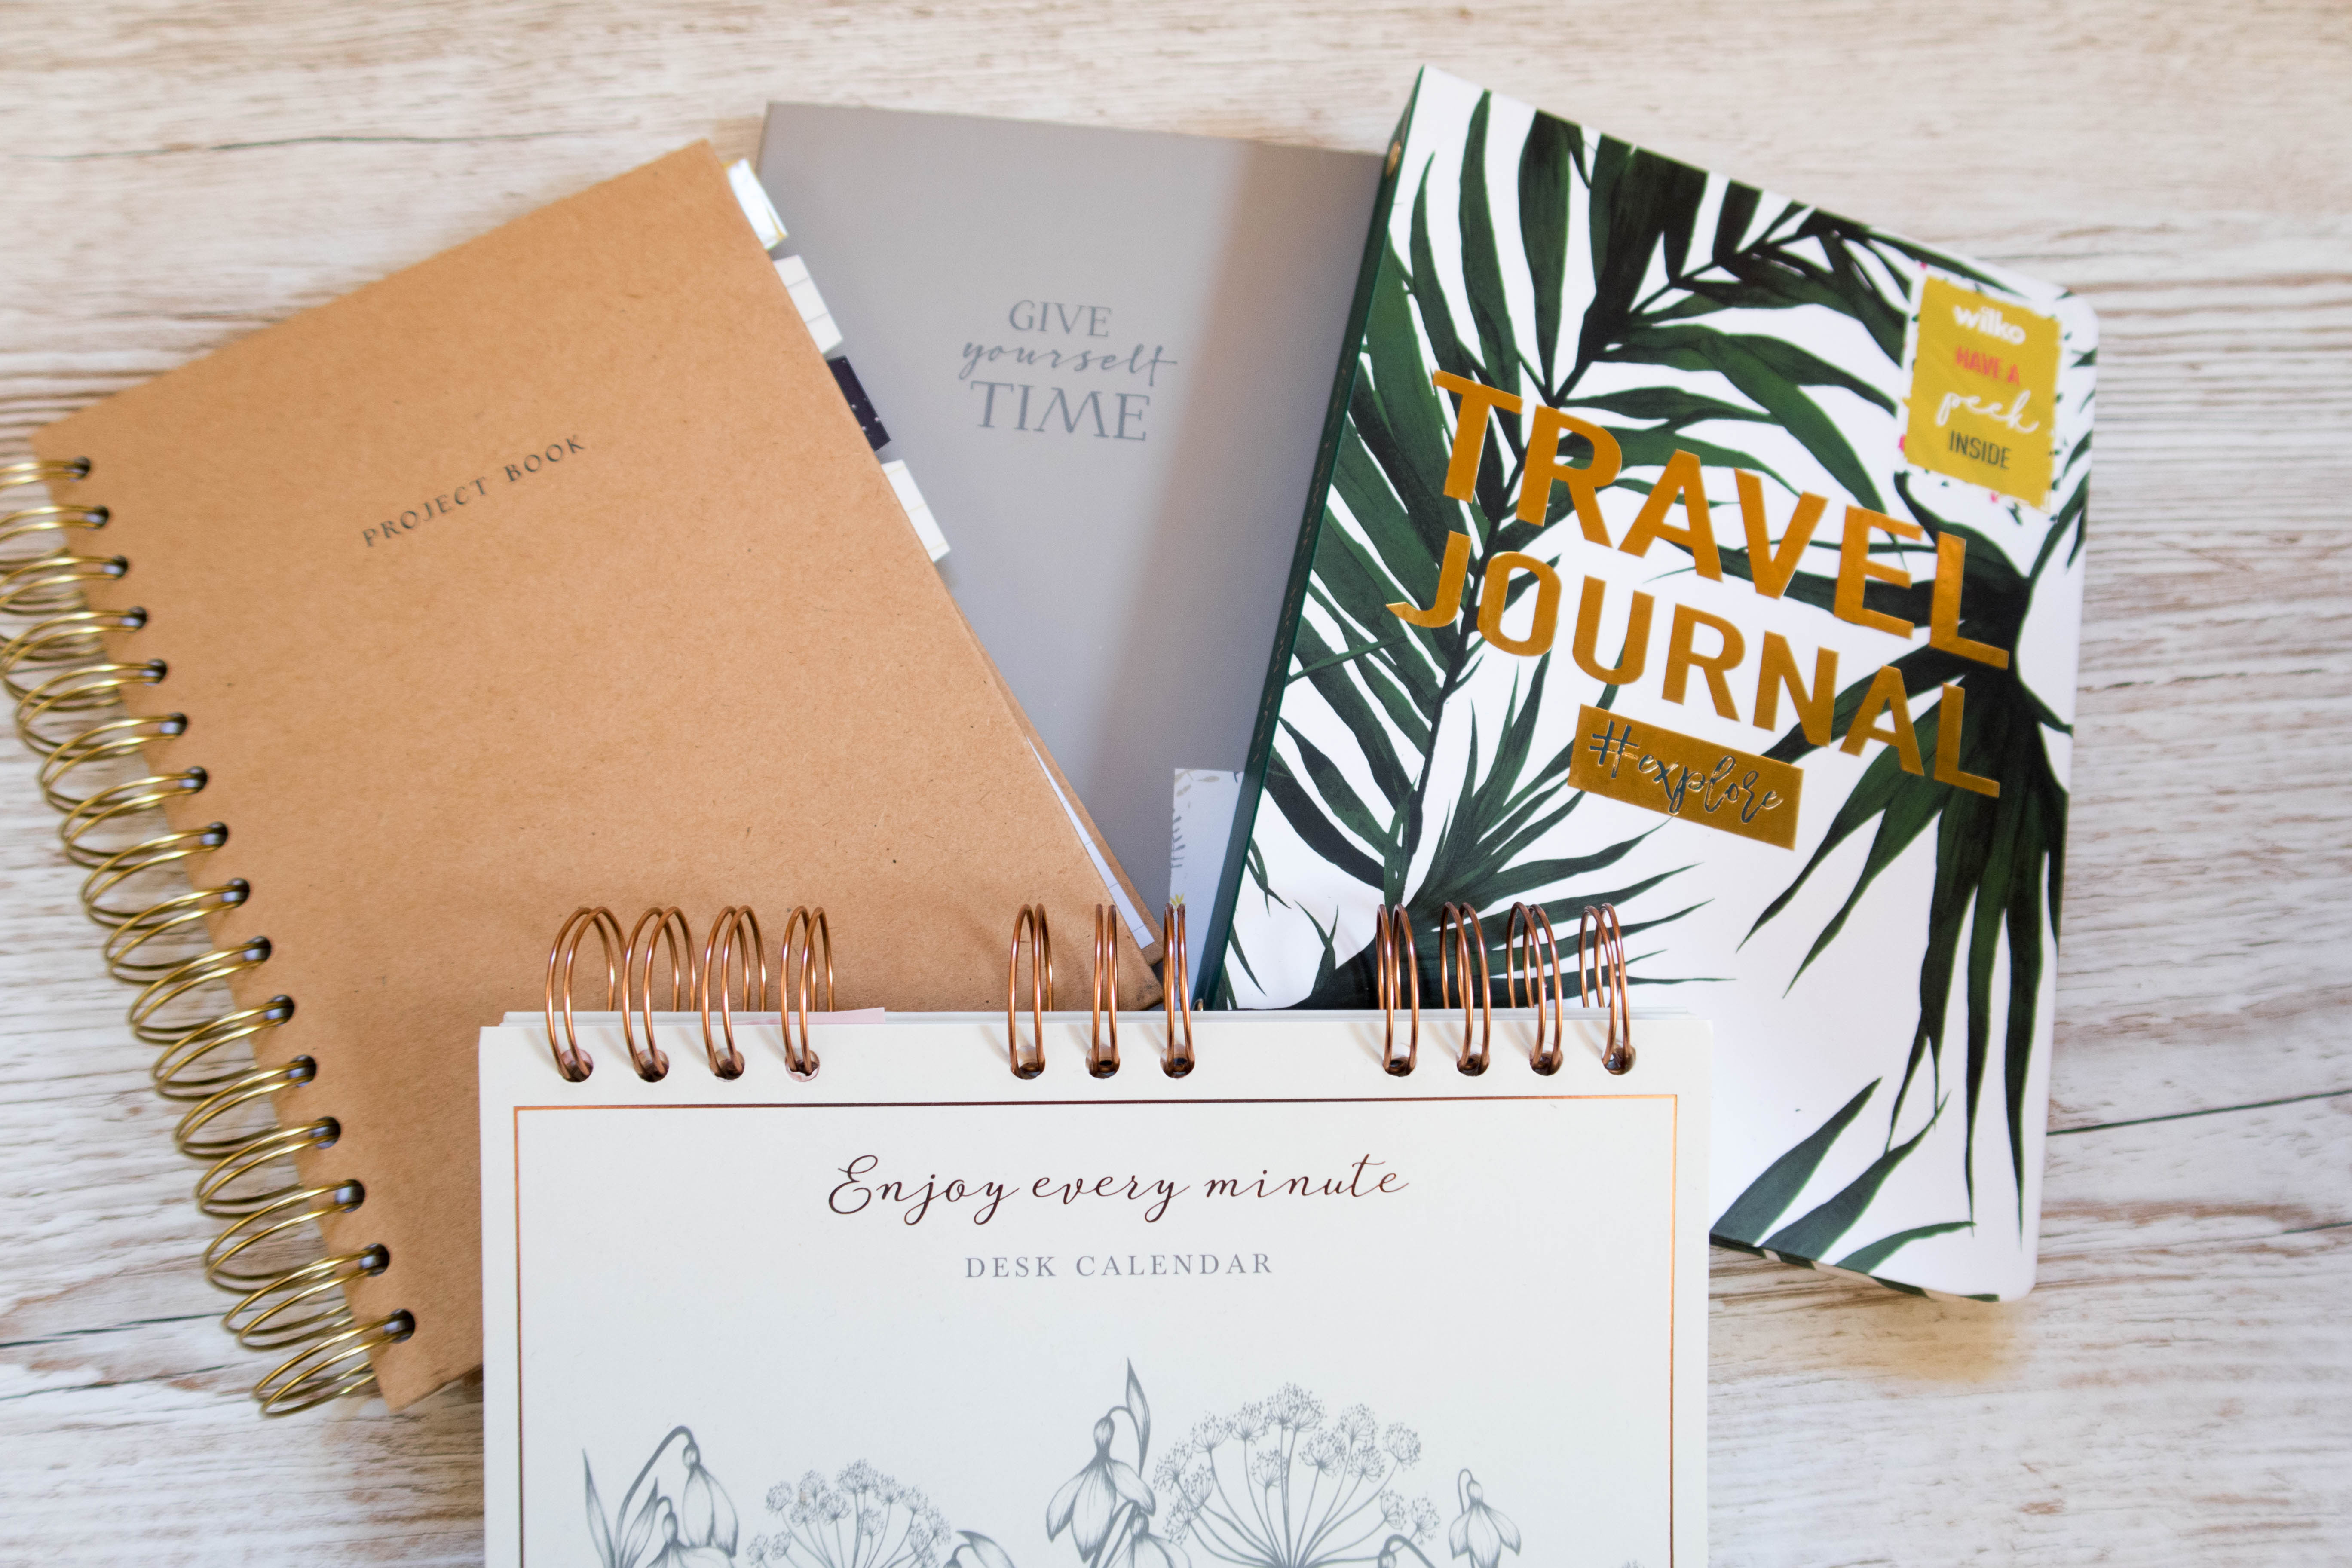 Gorgeous Stationery for Students: Various notebooks, travel journal, happiness journal, desk calendar